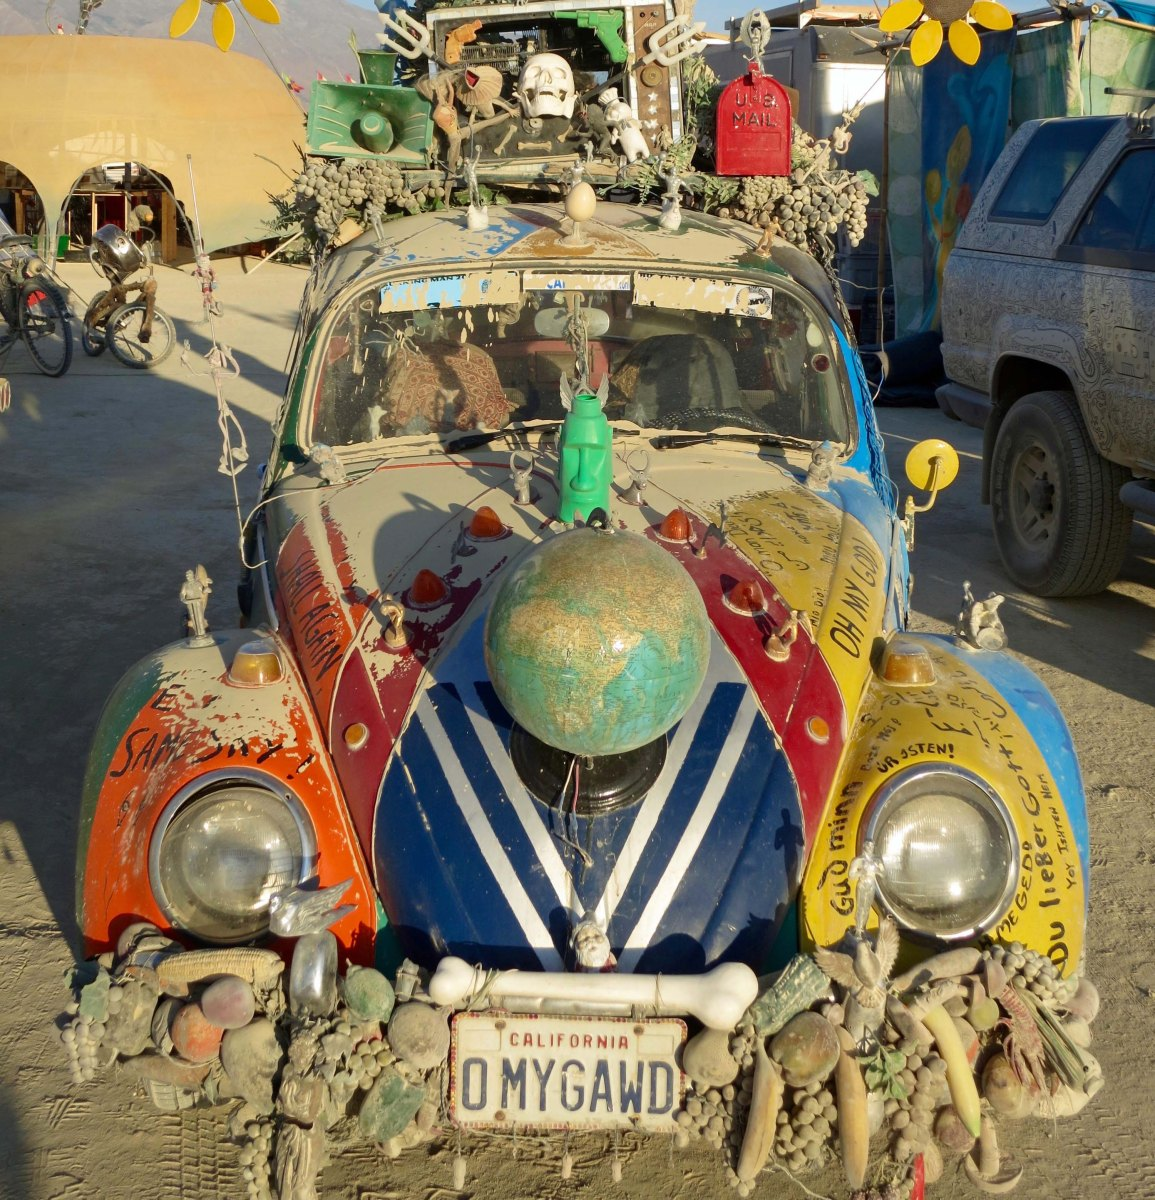 VW Bug art car/mutant vehicle at Burning Man.